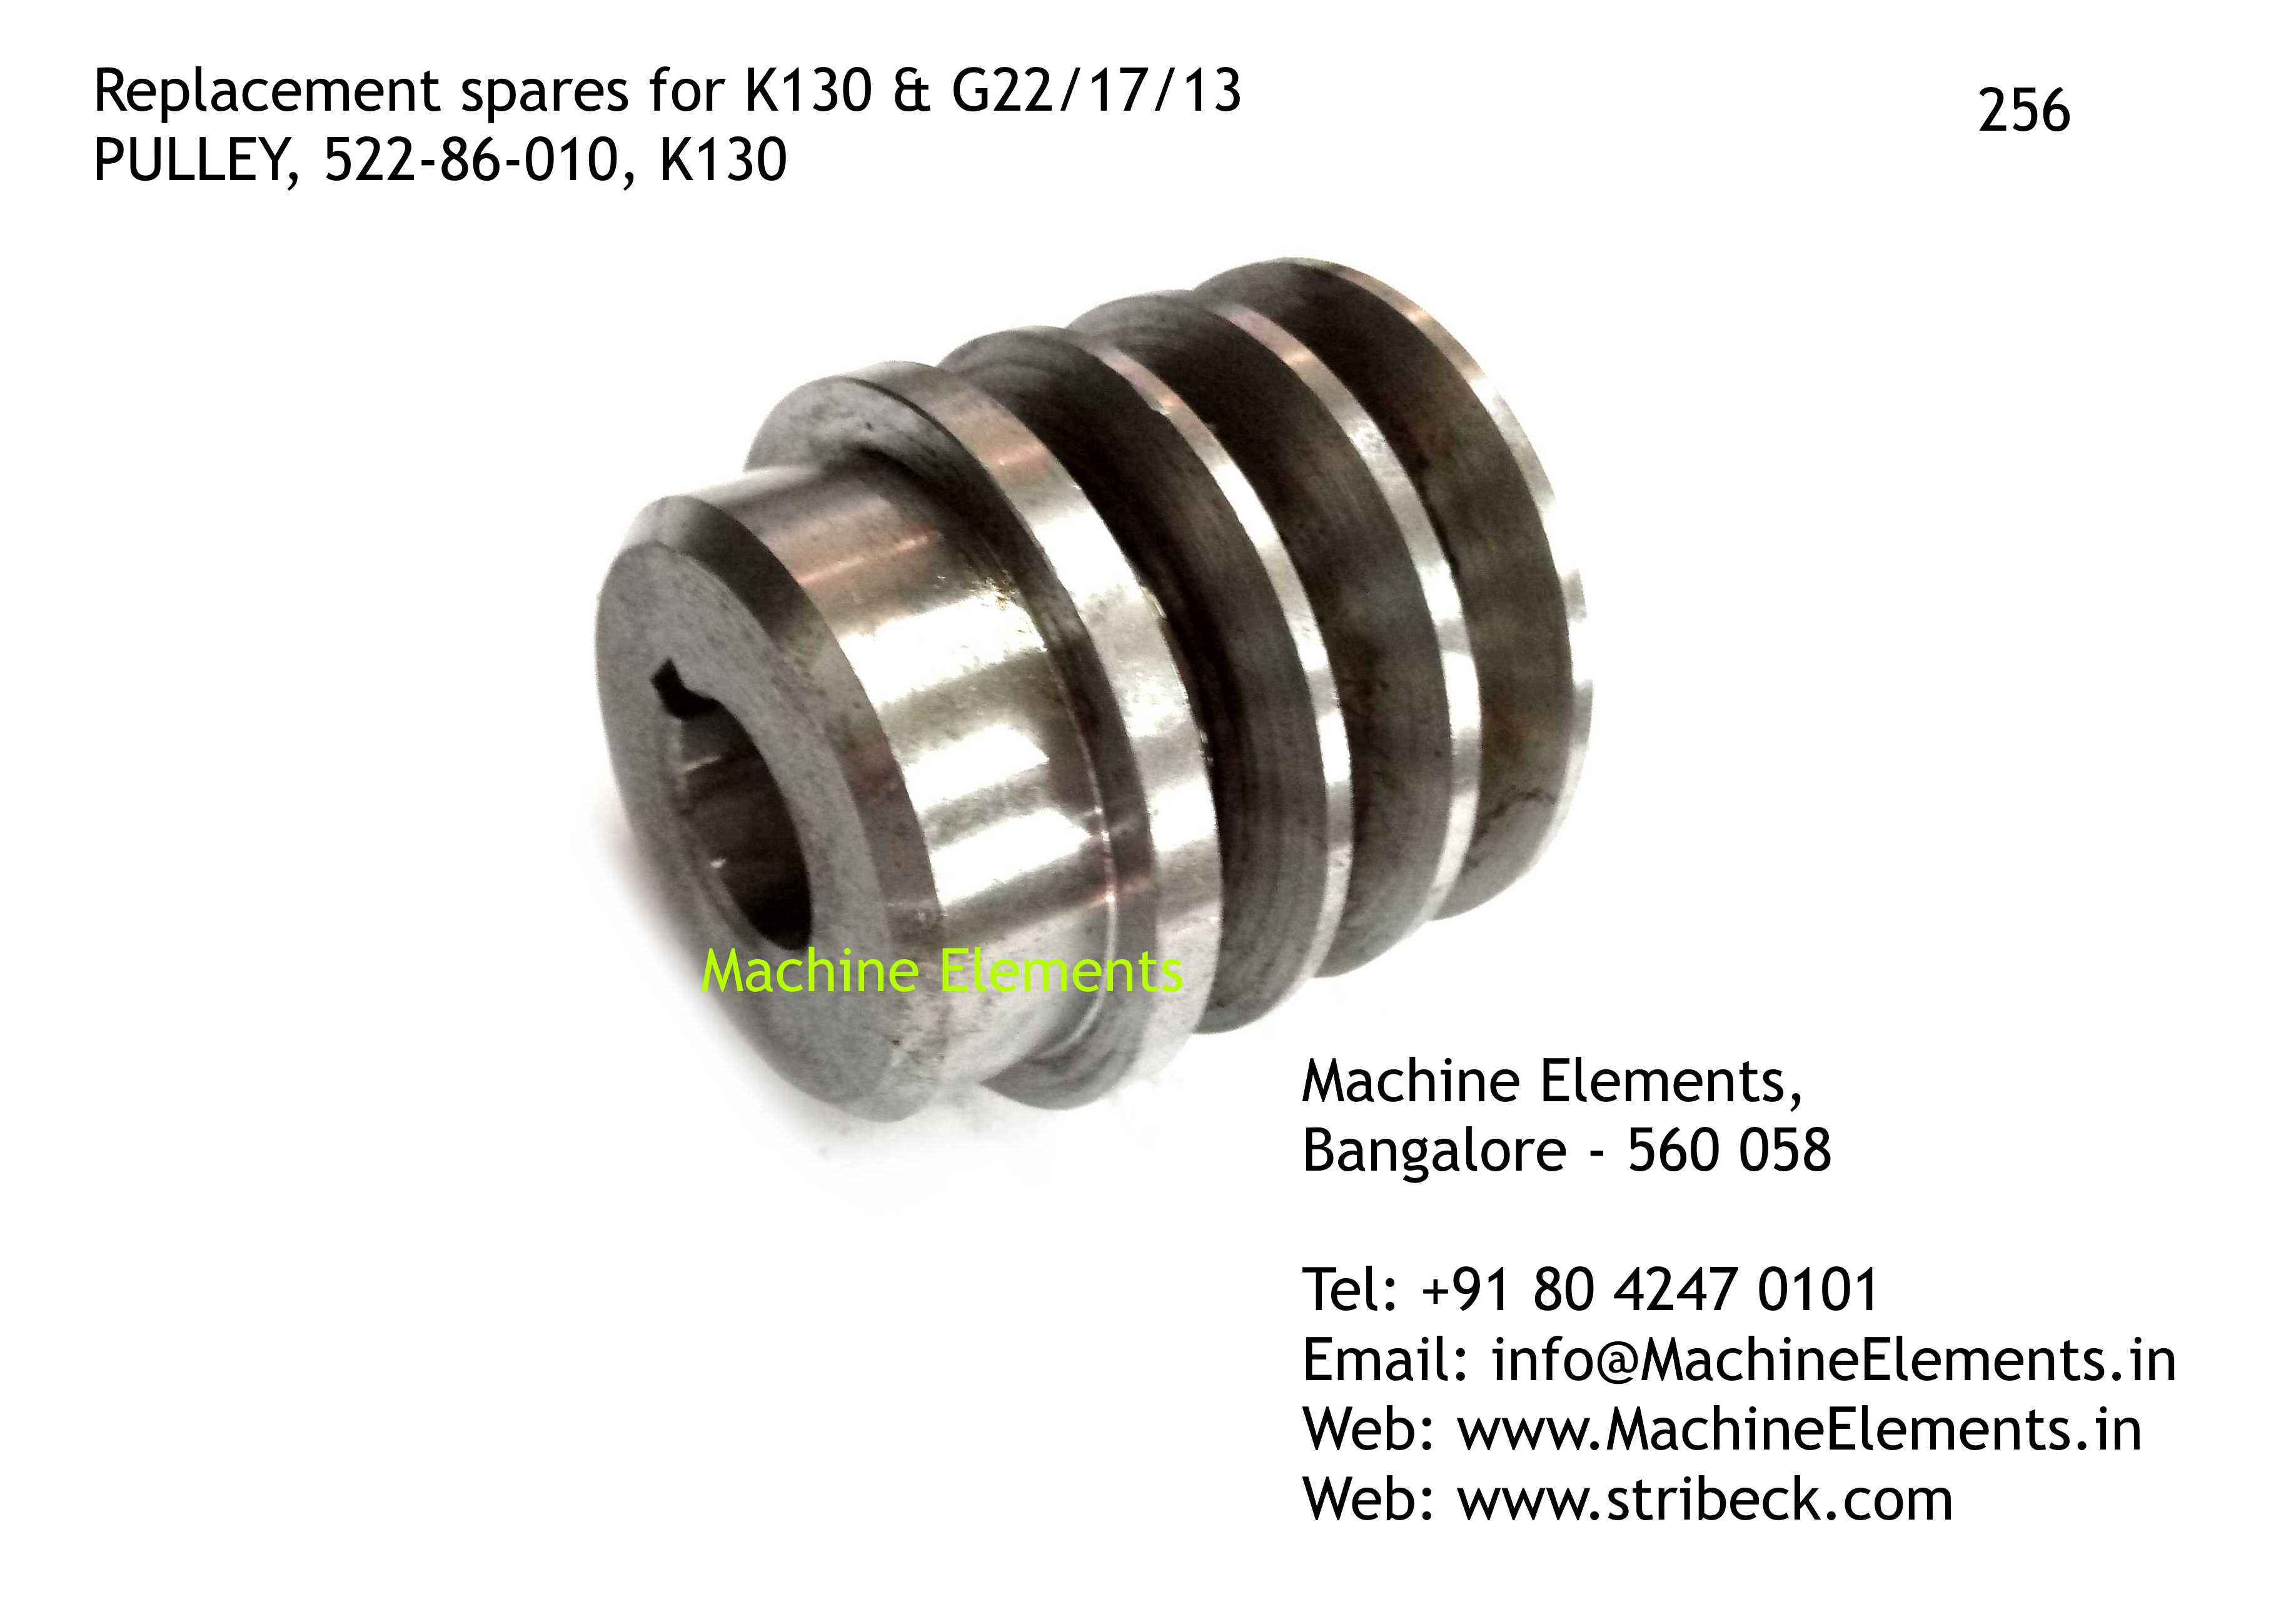 PULLEY, 522-86-010